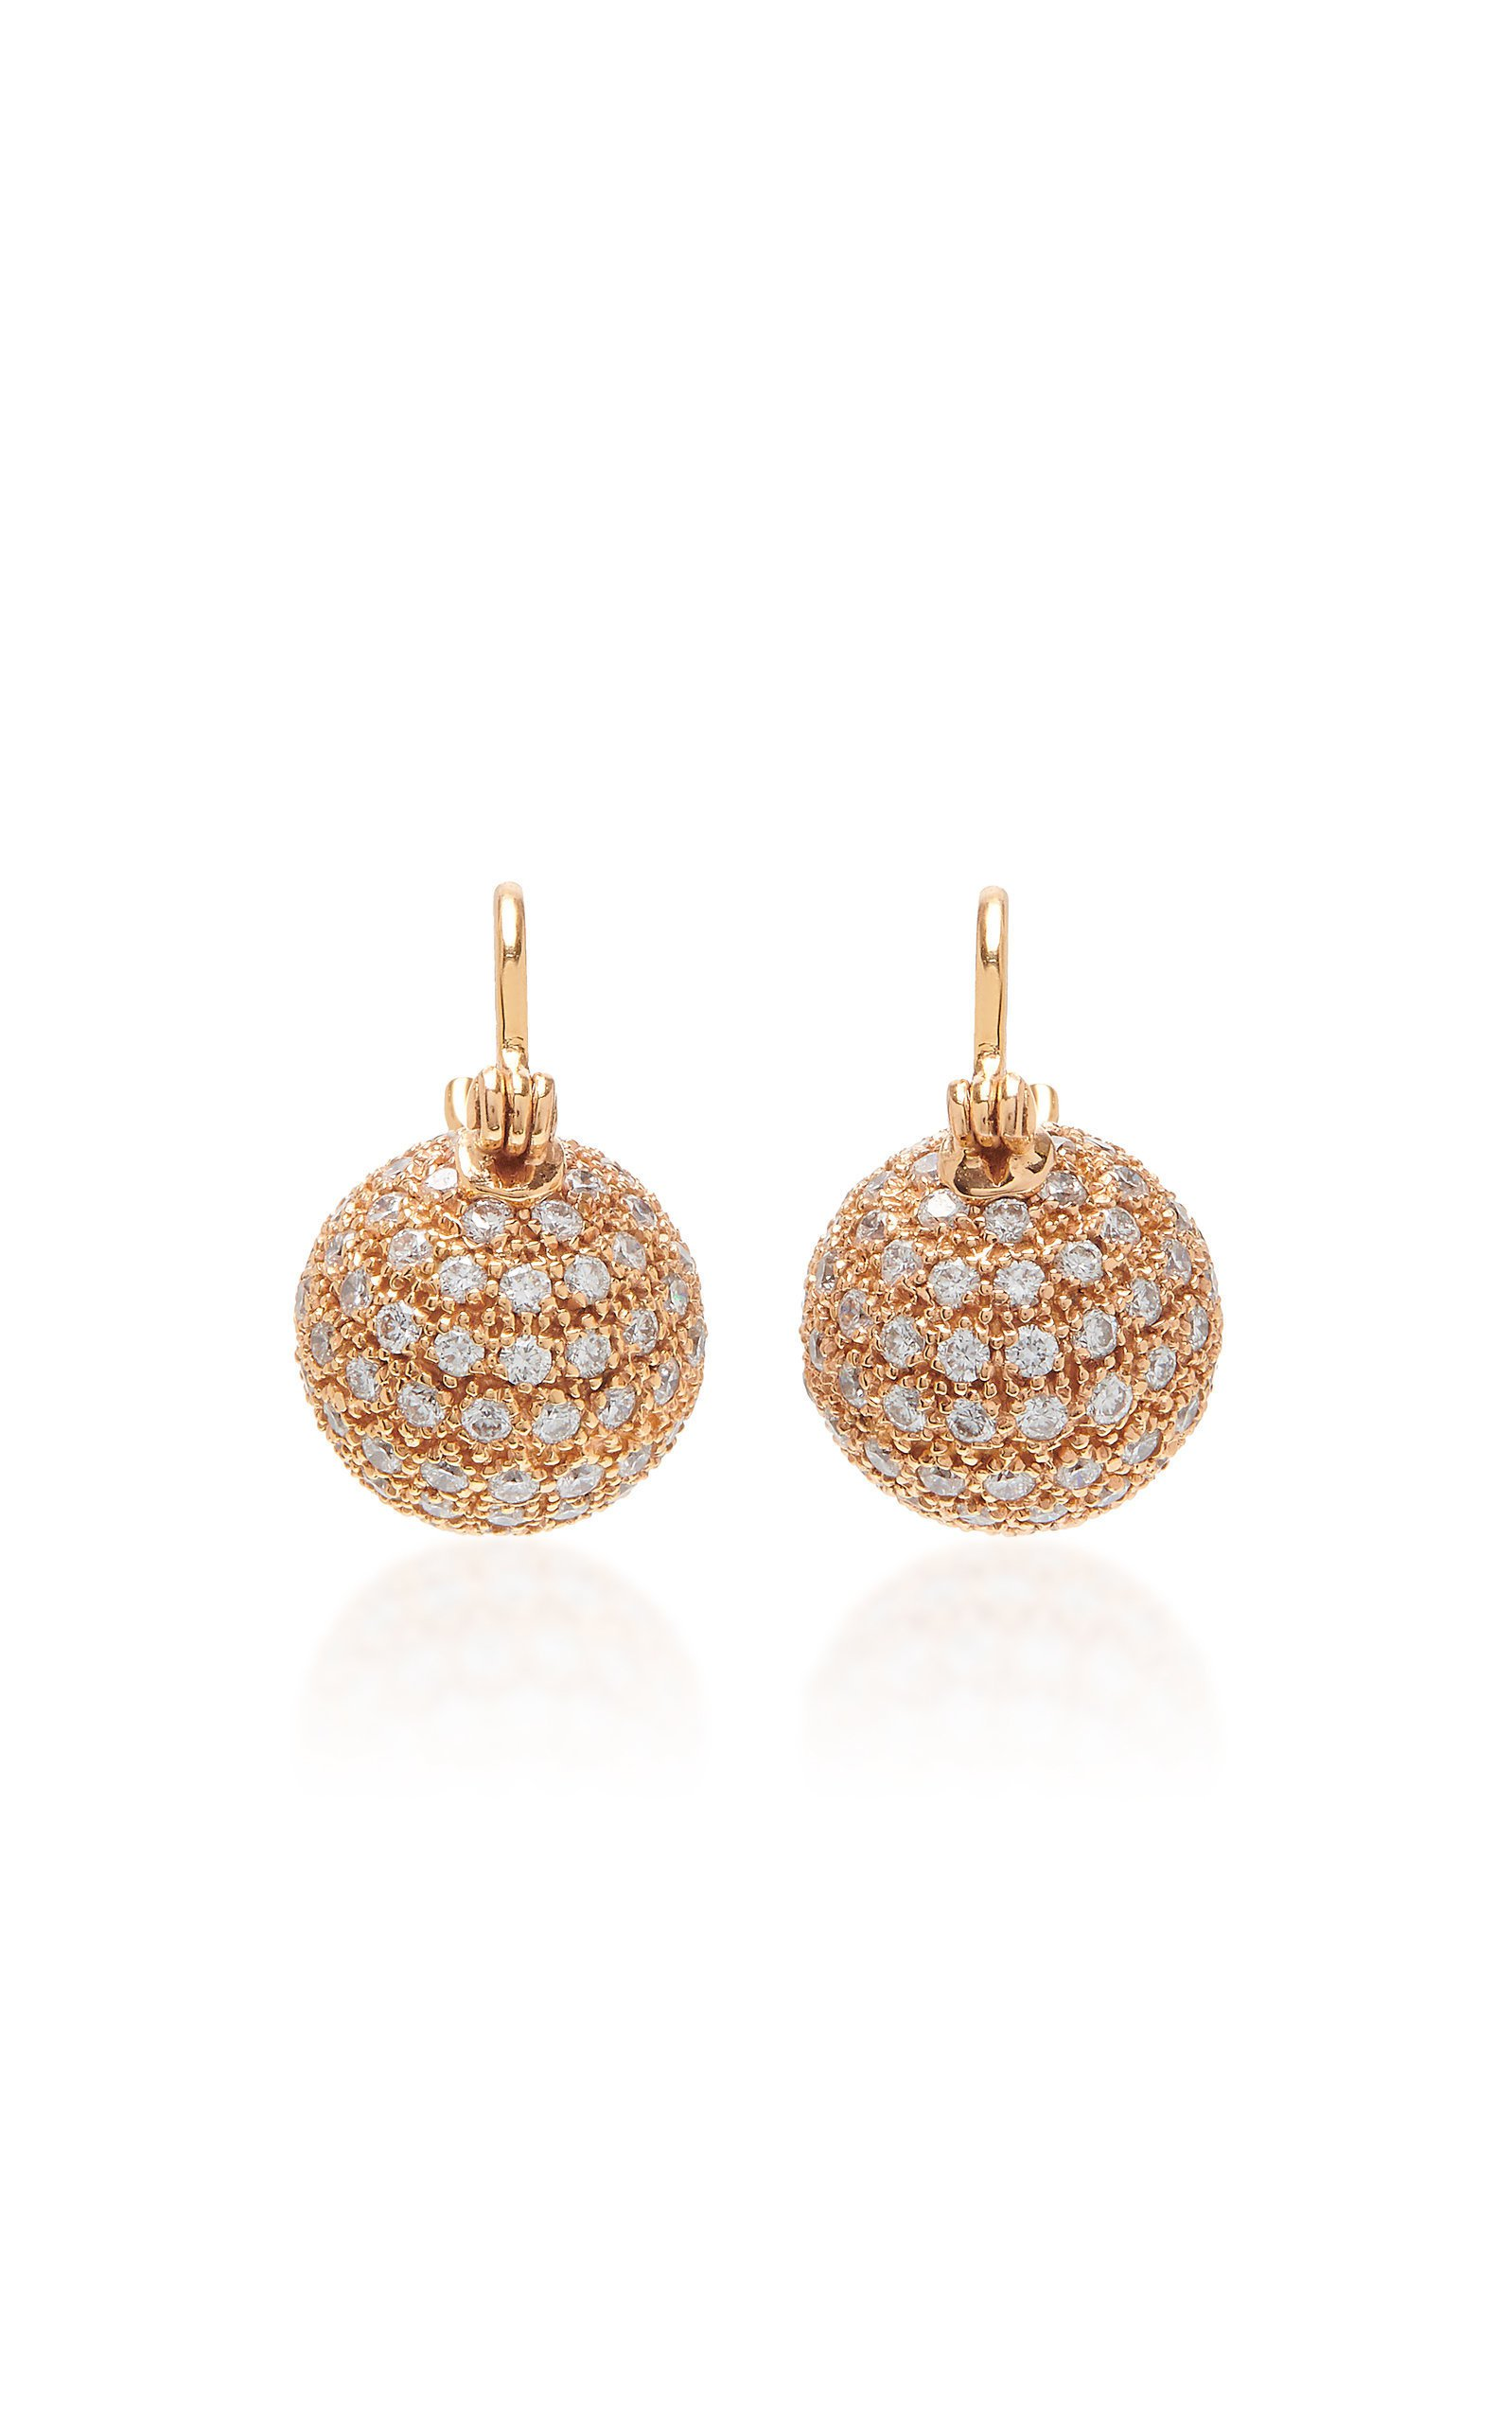 Parulina 18K Rose Gold And Diamond Earrings